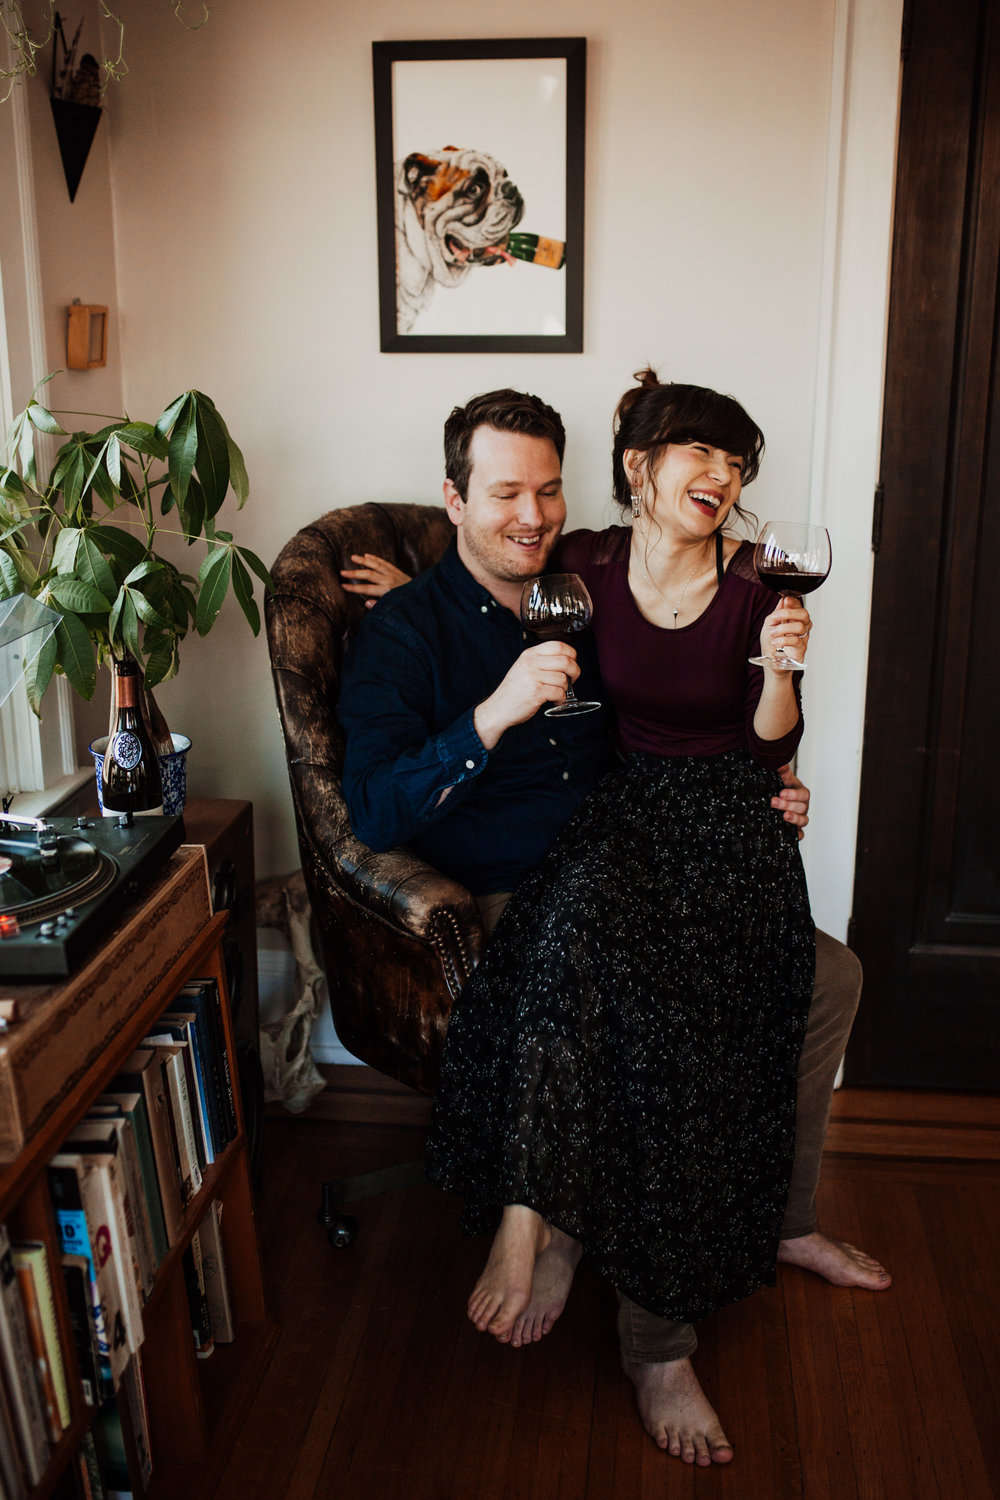 louisville-engagement-photographer-record-store-in-home-session-crystal-ludwick-photo (16 of 53).jpg